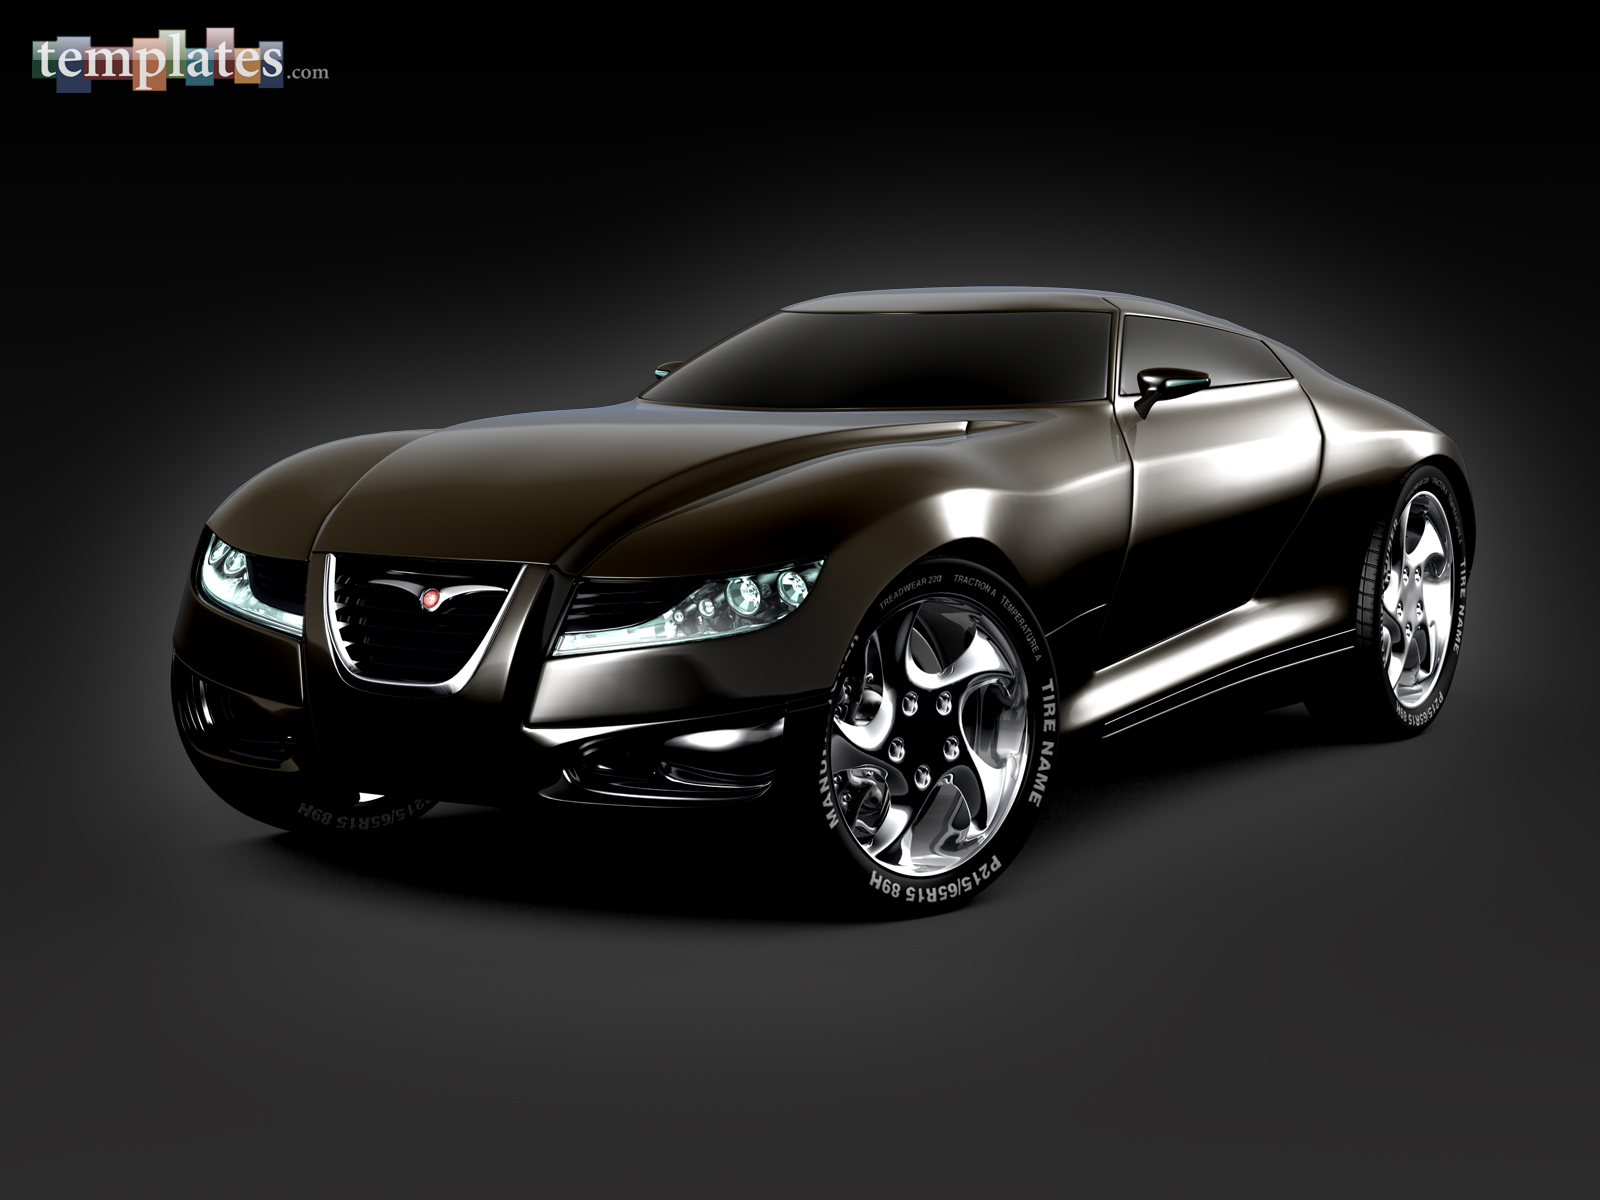 Background wallpaper XP wallpaper 3D Sports Car 1600x1200